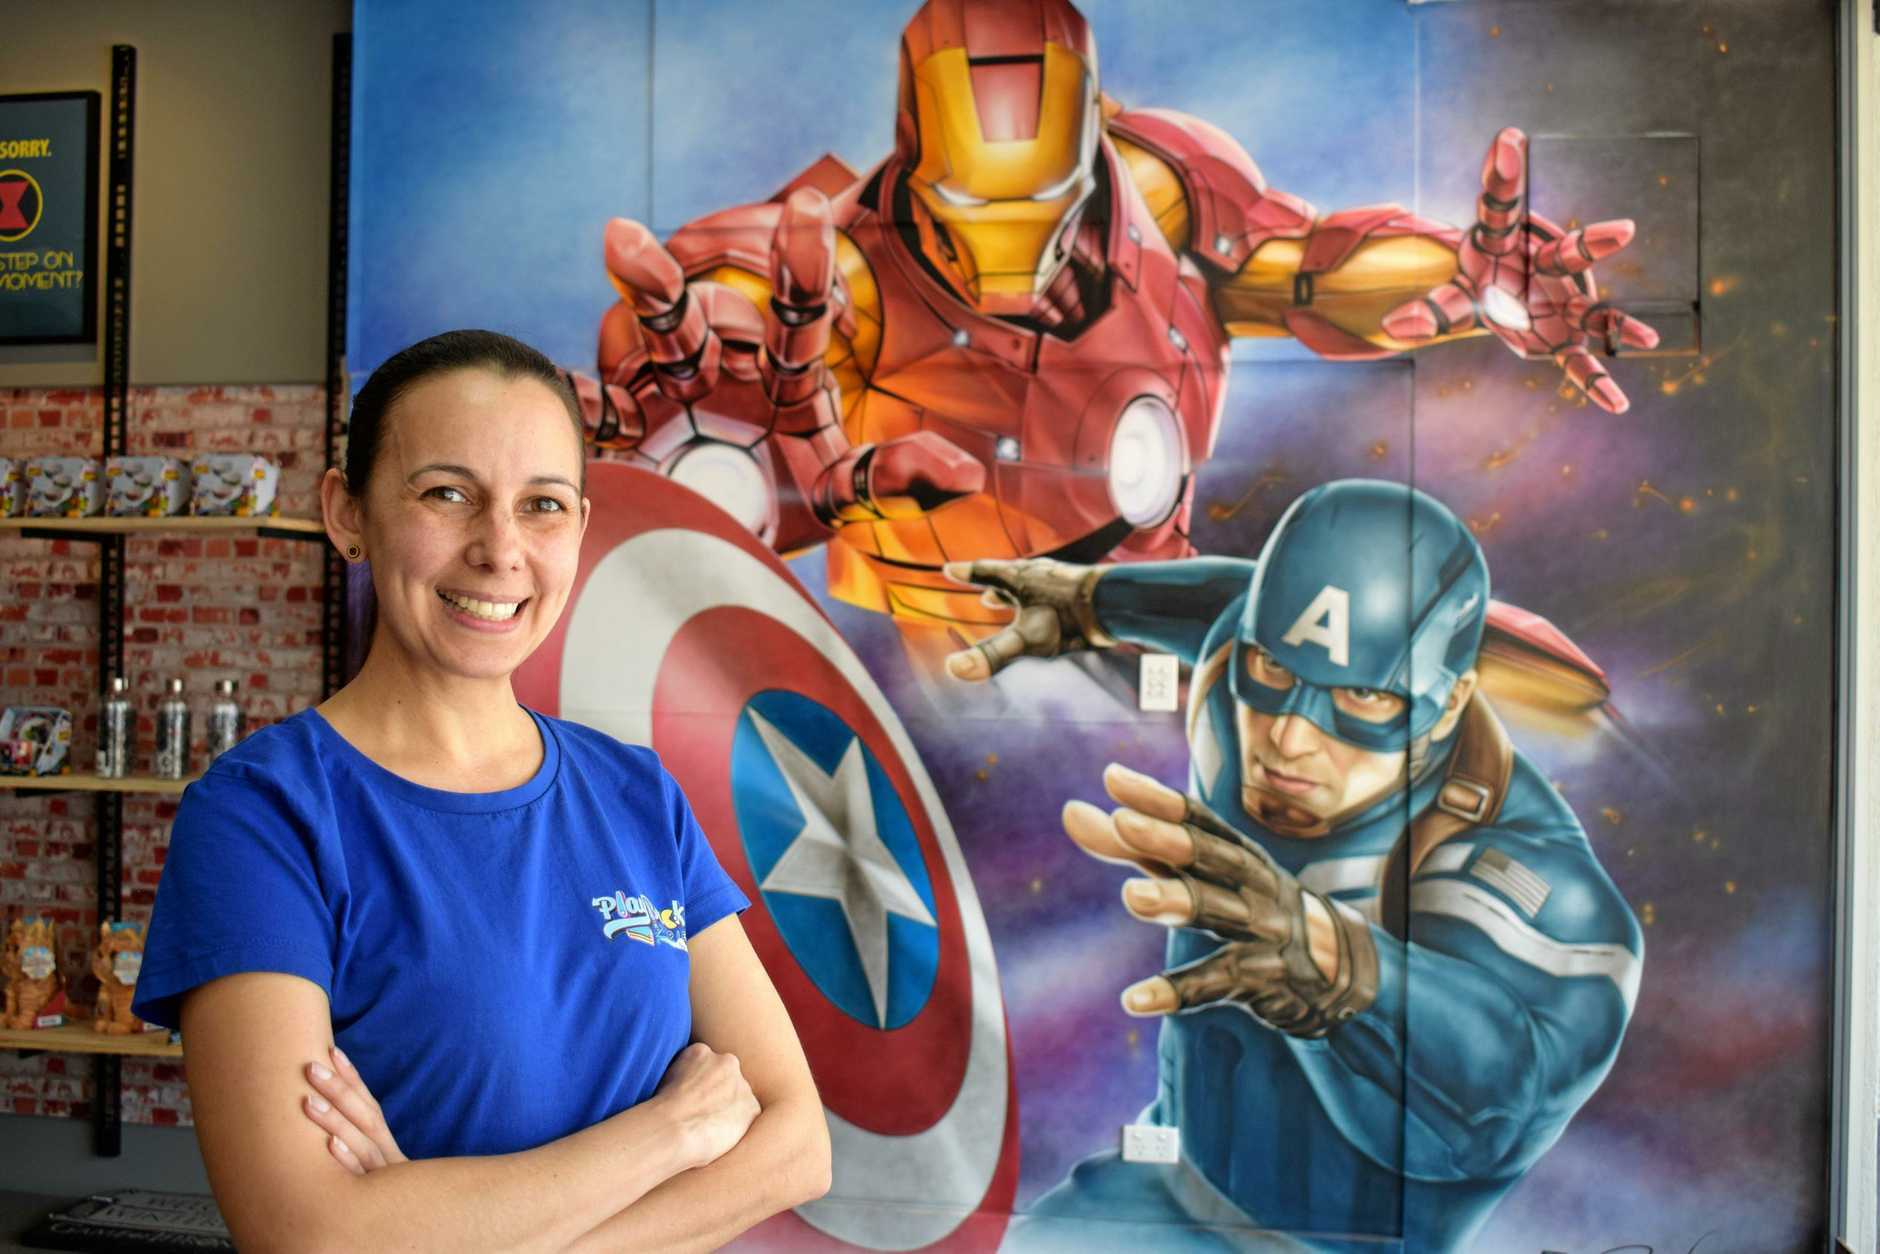 MARVEL-OUS: Aisha Belling is the owner of Play Back a new arcade and pop culture store right in the heart of Mary St.